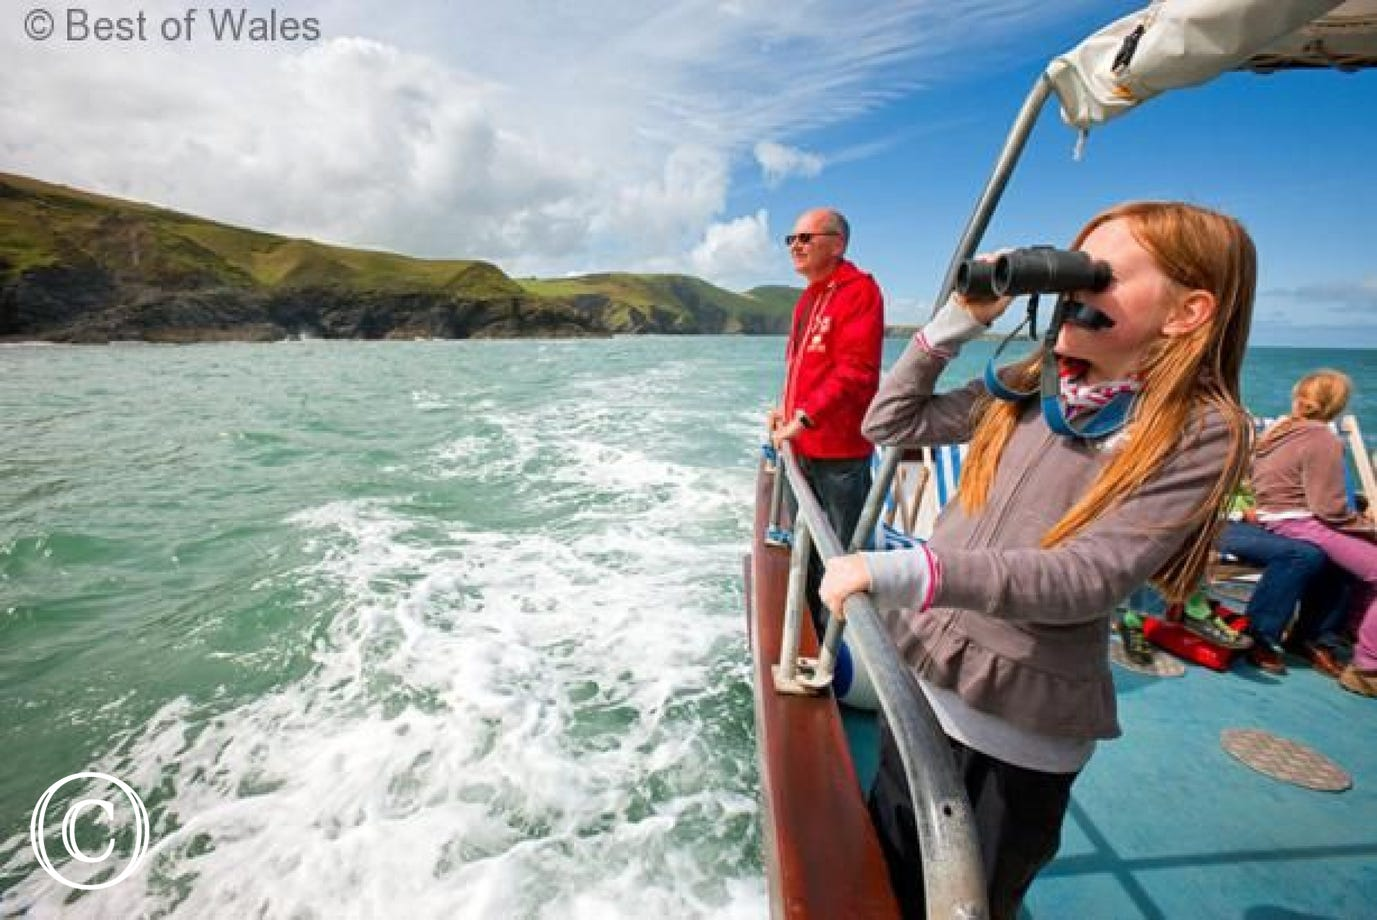 Ceredigion coast is famous for its dolphin watching trips